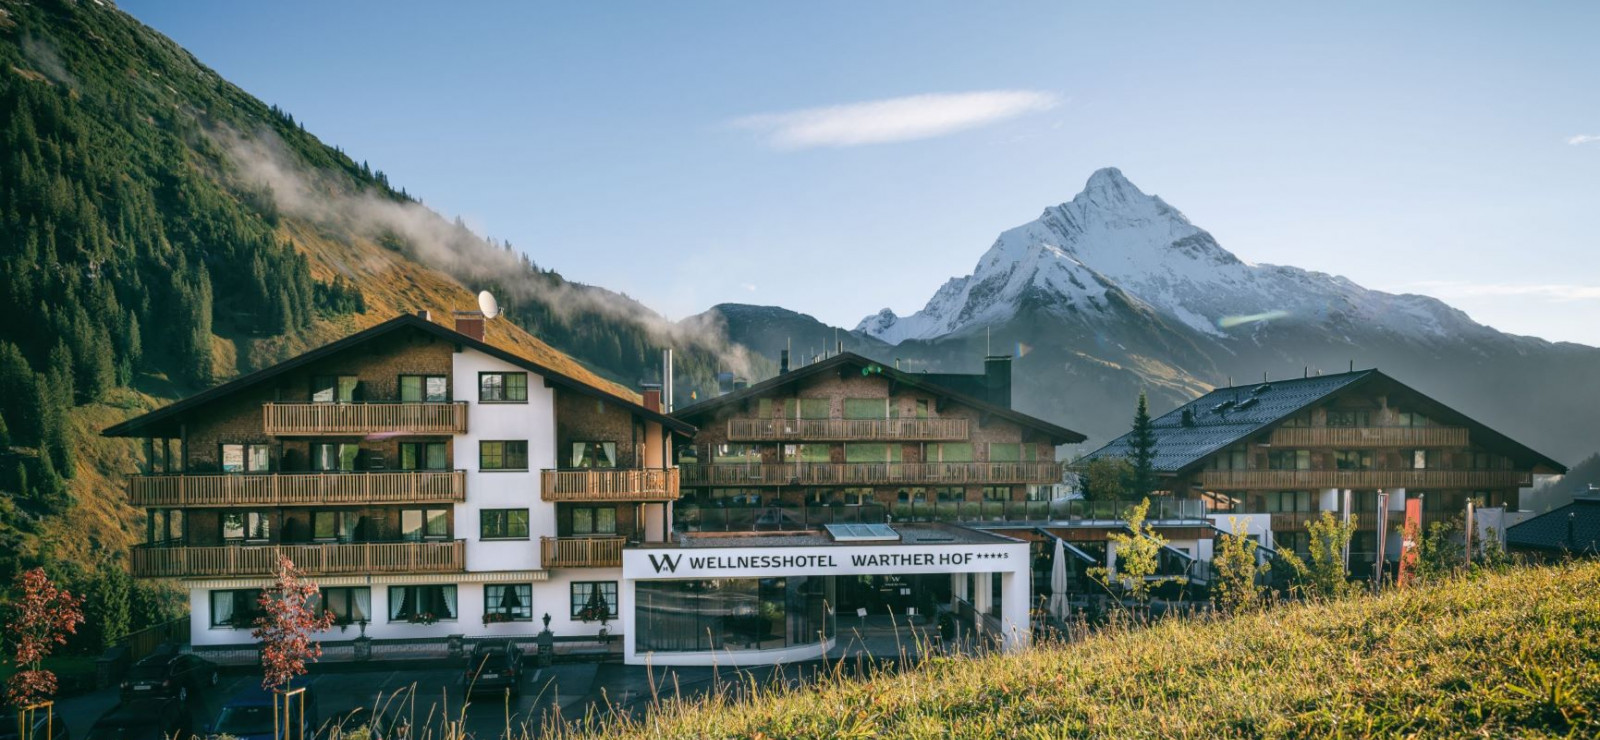 Wellnesshotel Wellnesshotel Warther Hof ****superior | Warth am Arlberg